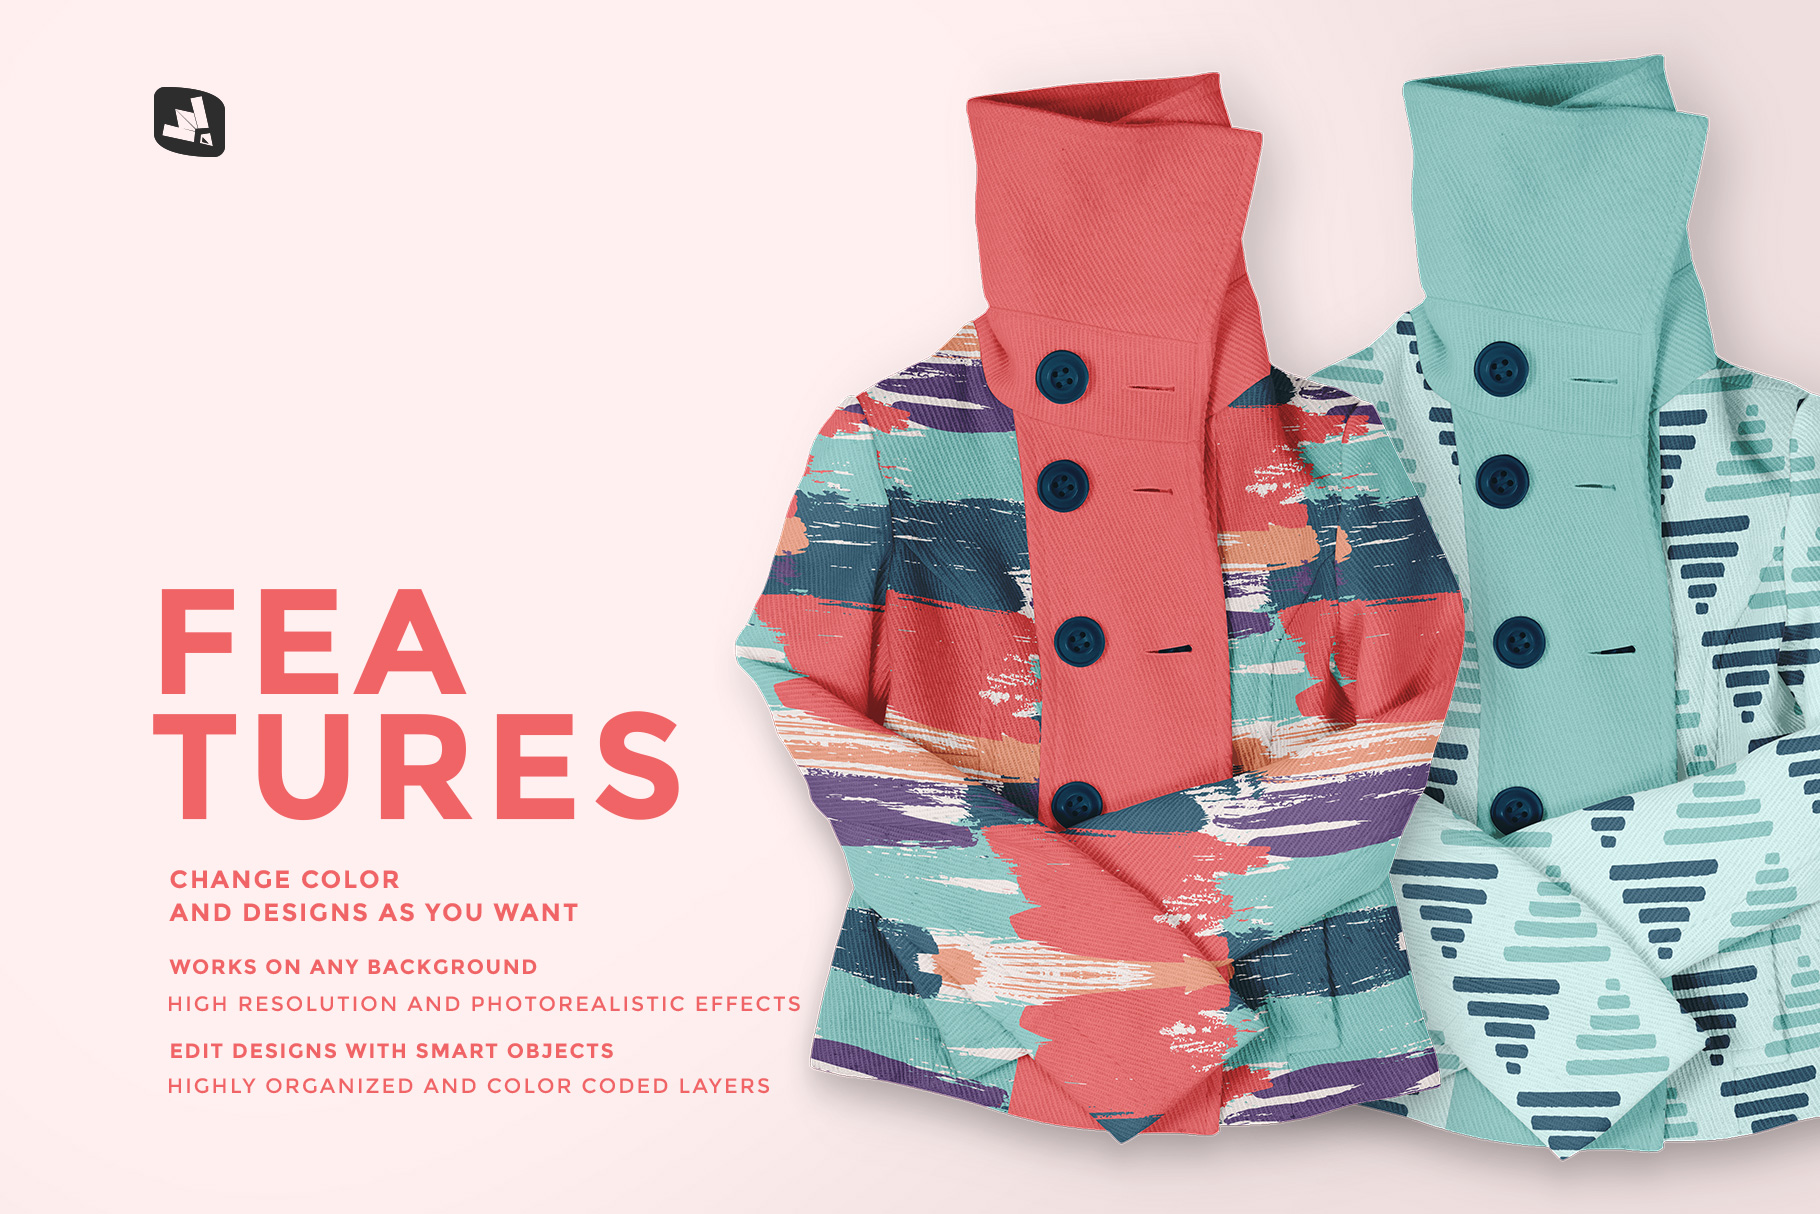 features of the women's high collar jacket mockup